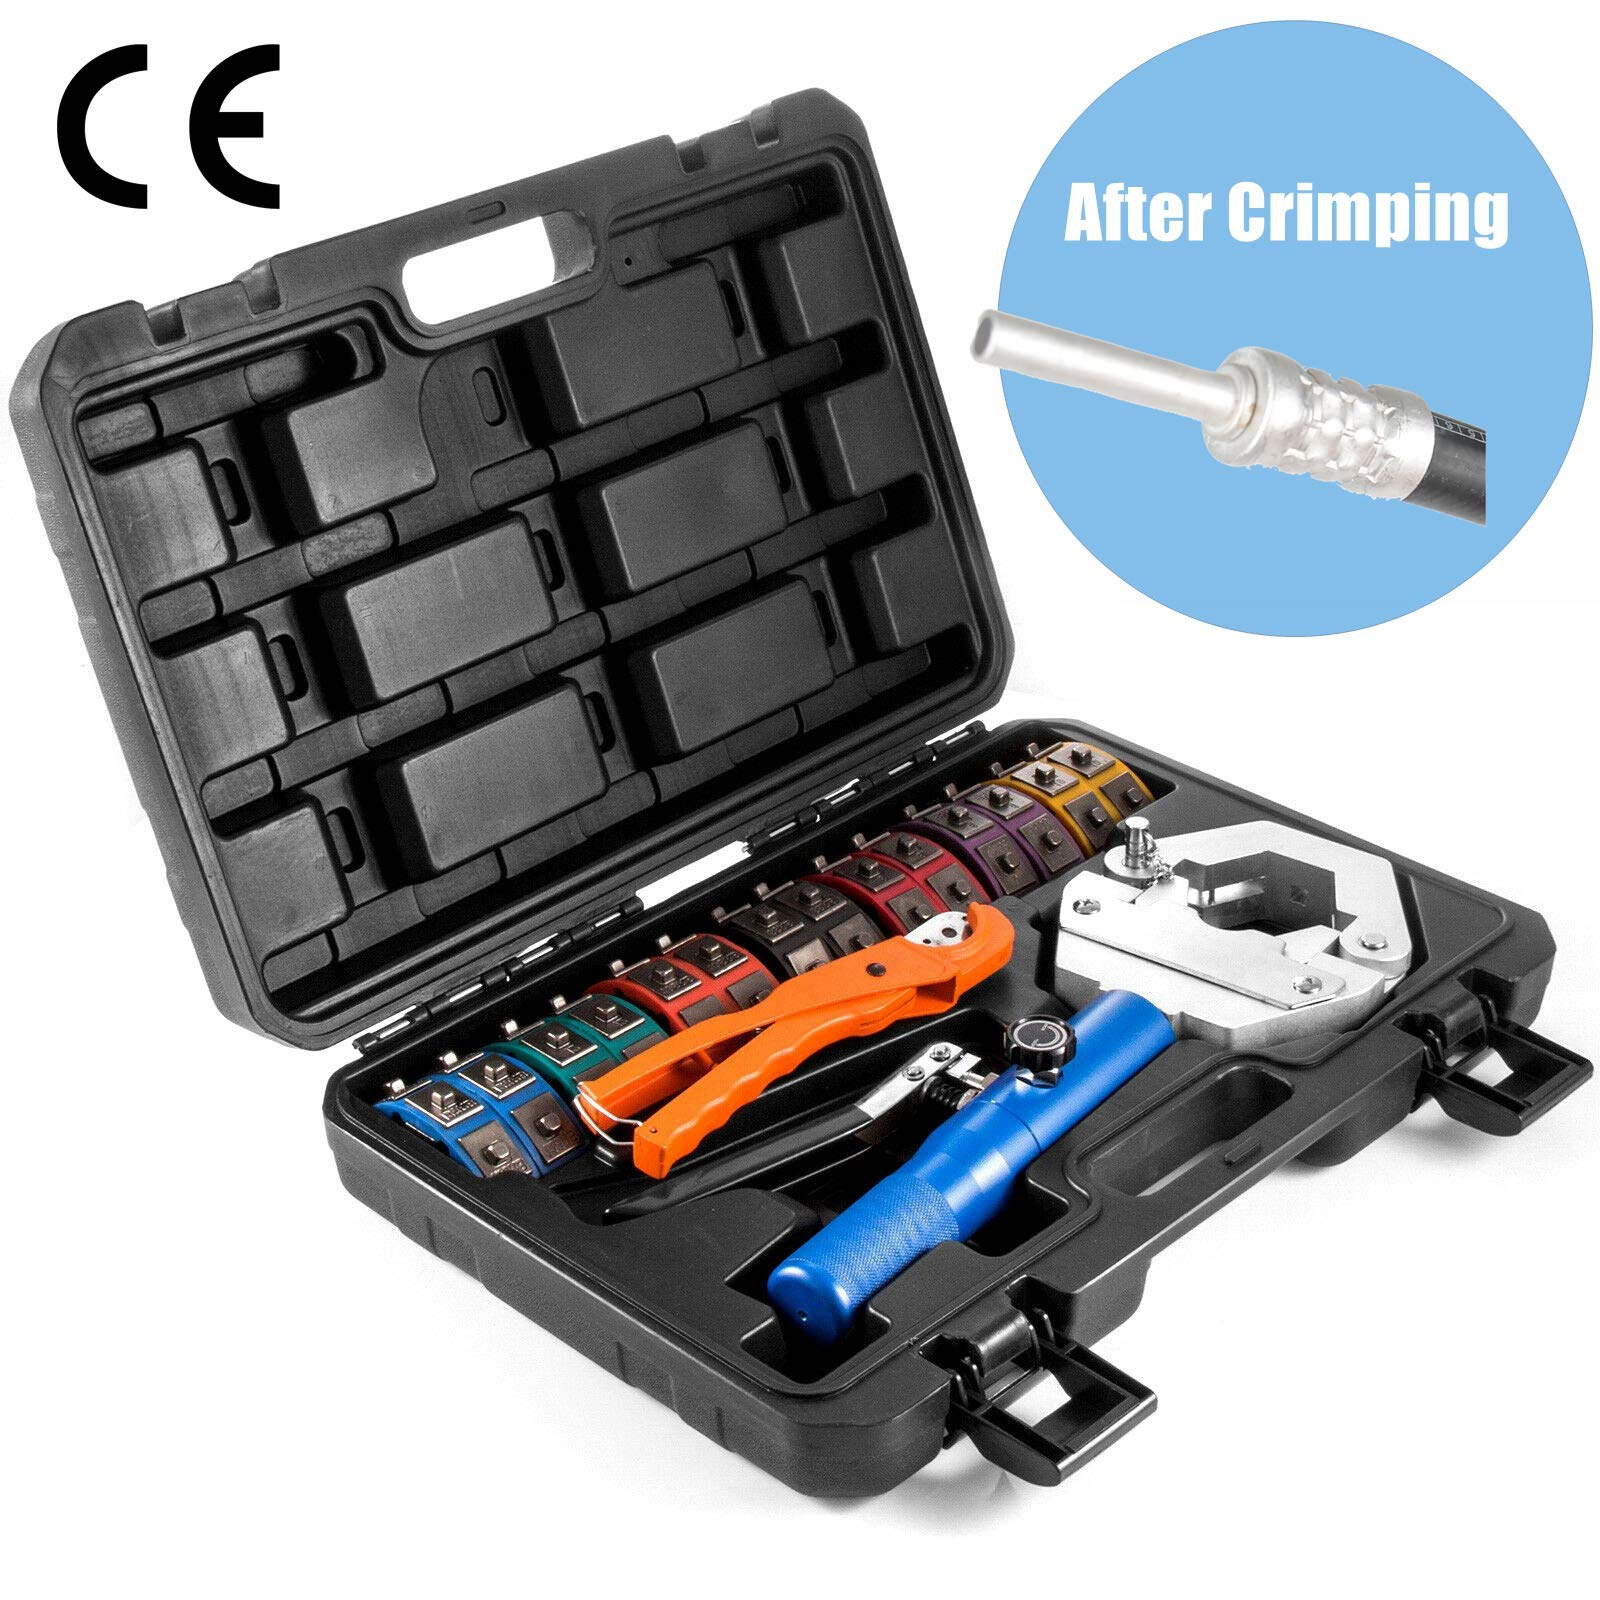 iGeelee Hydraulic Automotive A/C Hose Hydra-krimp Crimper Crimping Tools for BH Air Conditioning Hose & Beadlock A/C Fittings